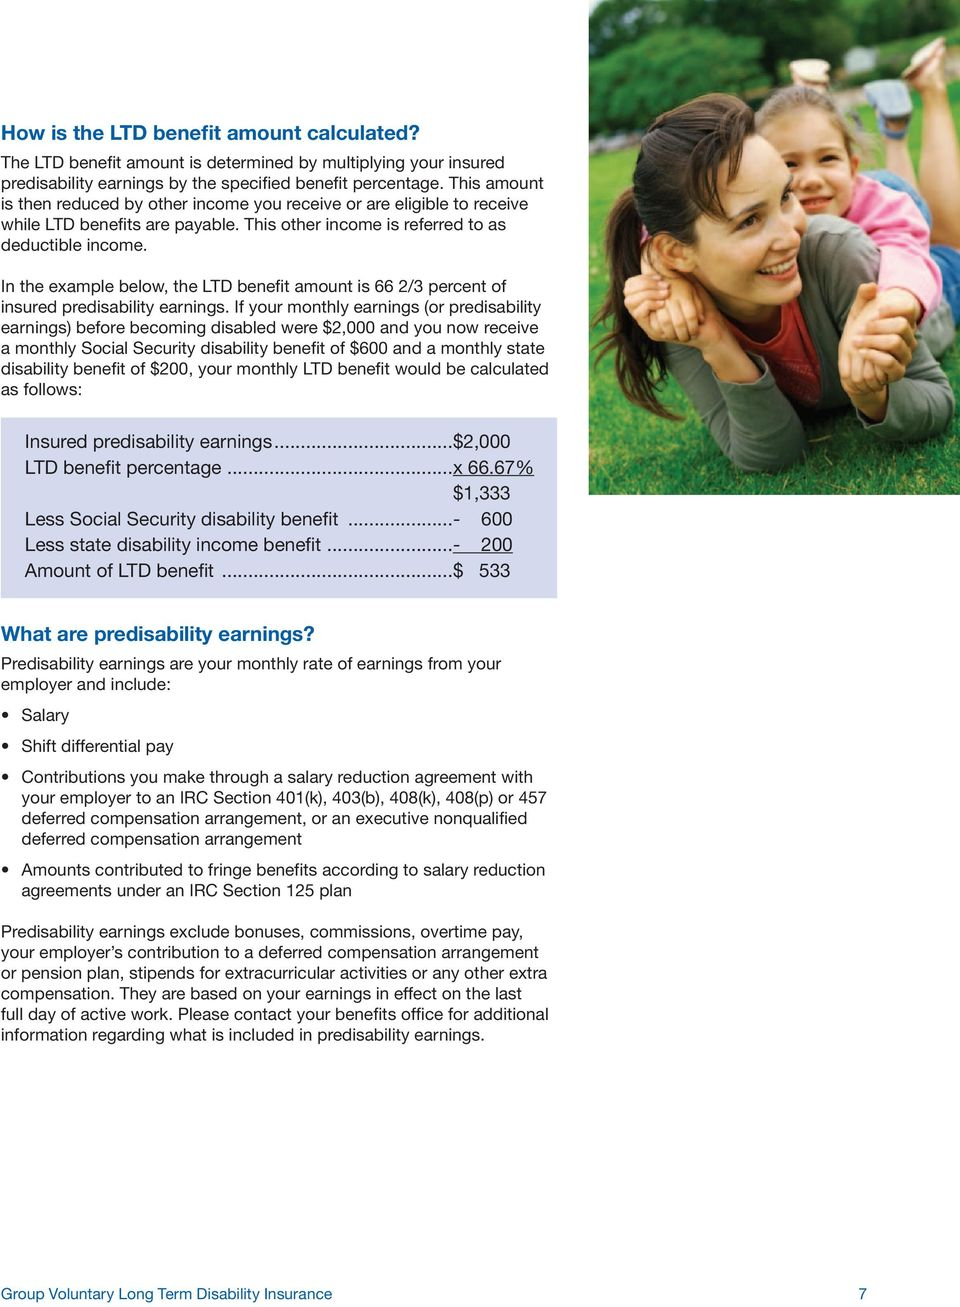 In the example below, the LTD benefit amount is 66 2/3 percent of insured predisability earnings.